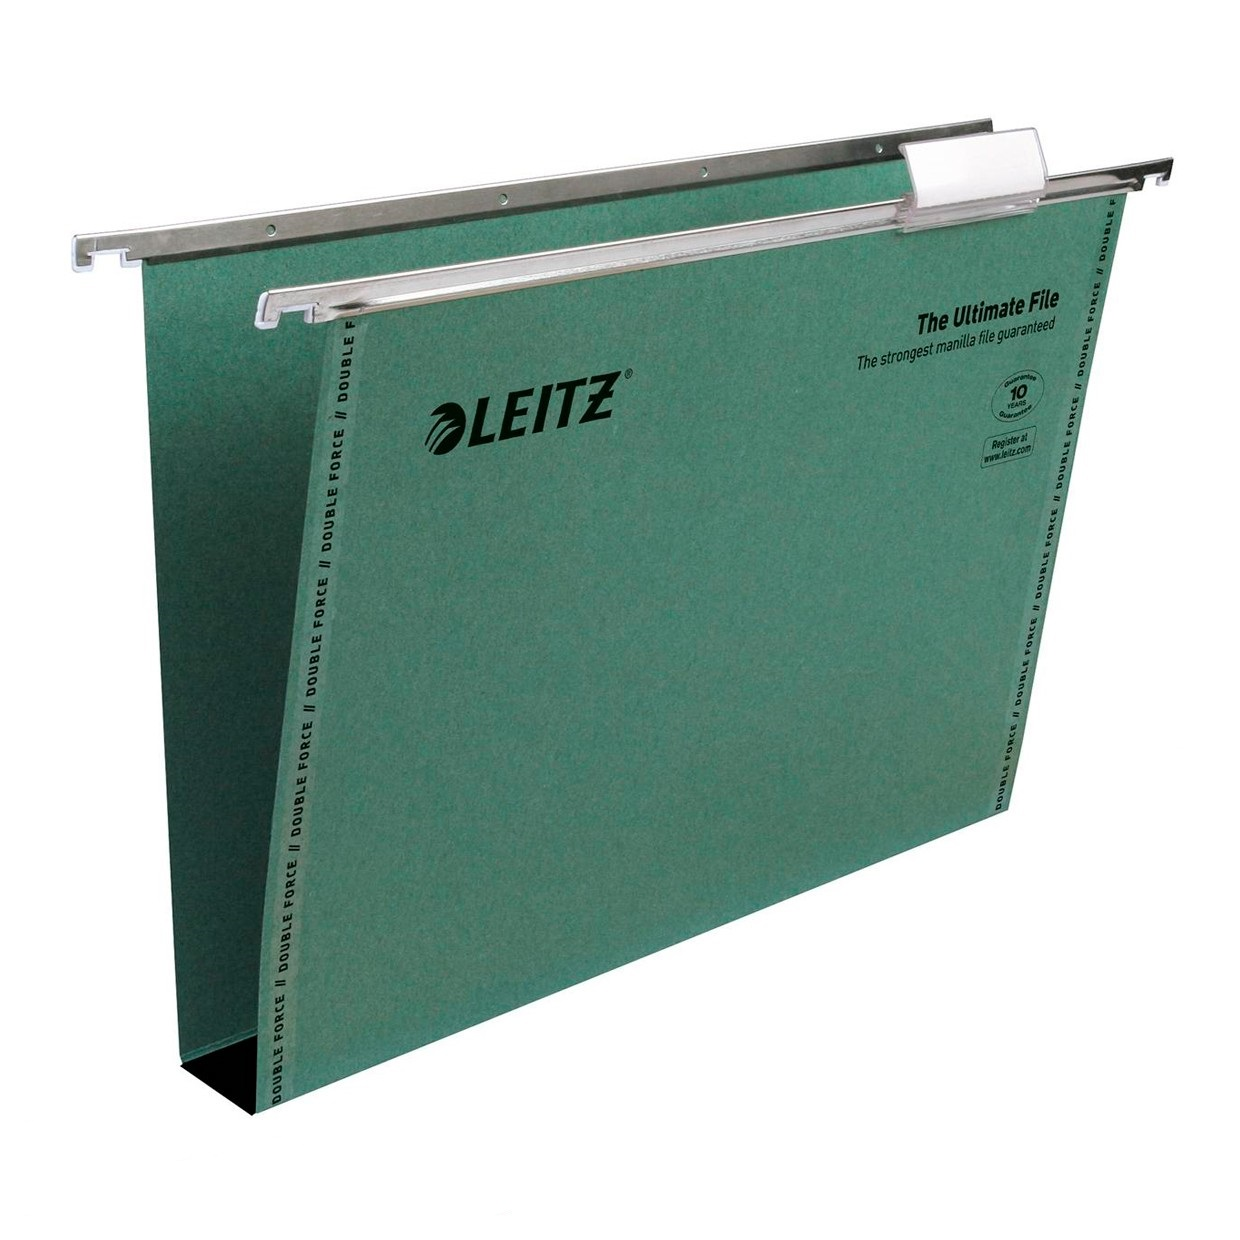 Leitz ULTIMATE SUSP FILE FC GRN P50